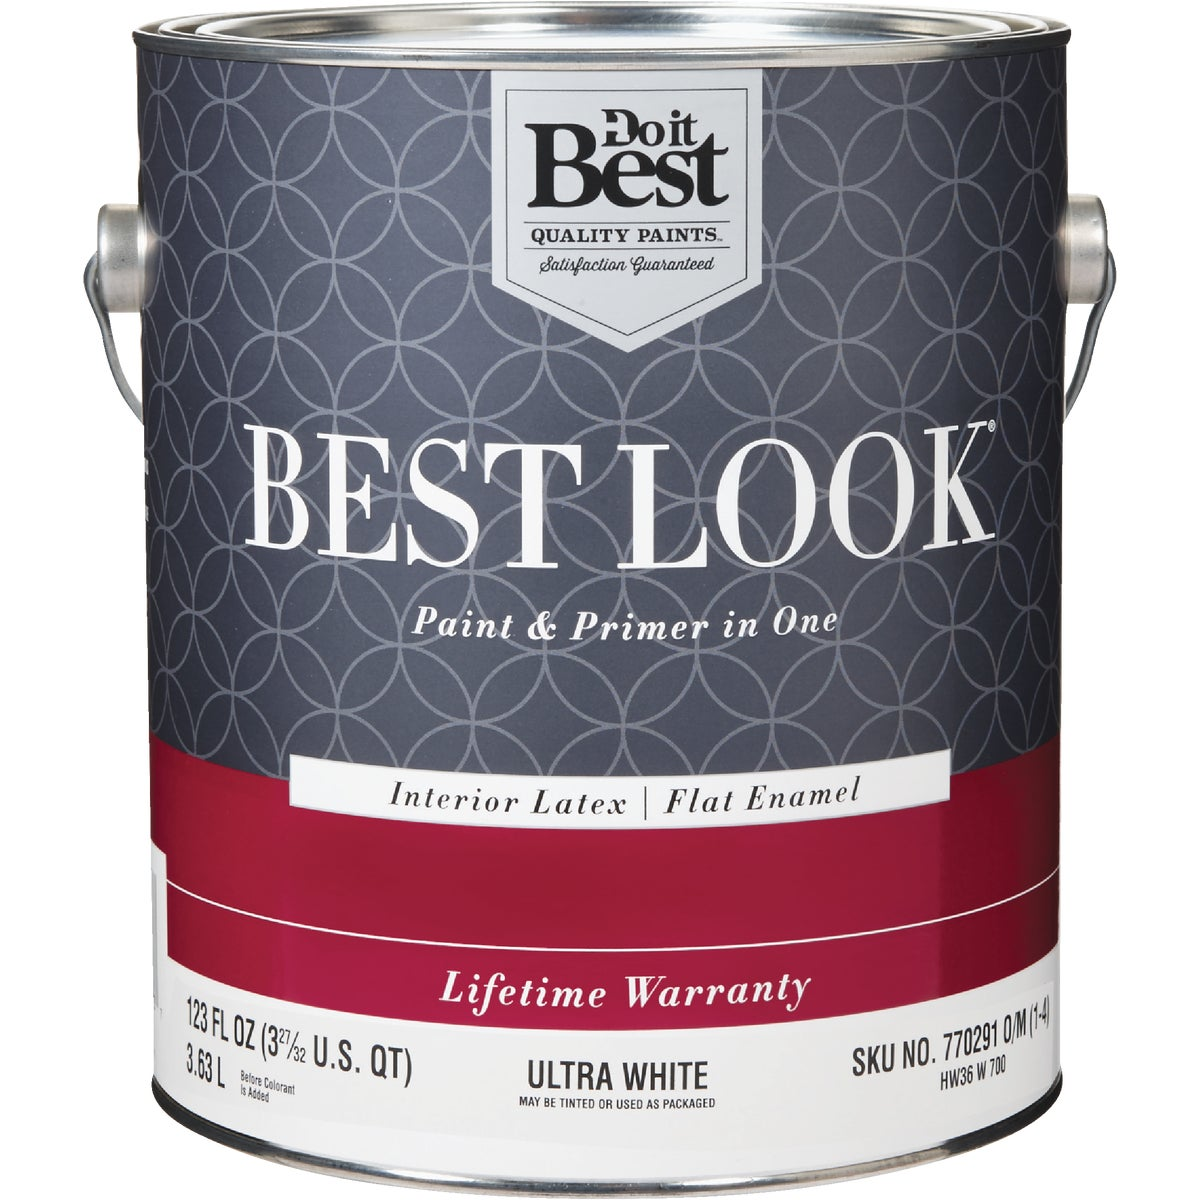 INT FLAT ULTRA WHT PAINT - HW36W0700-16 by Do it Best